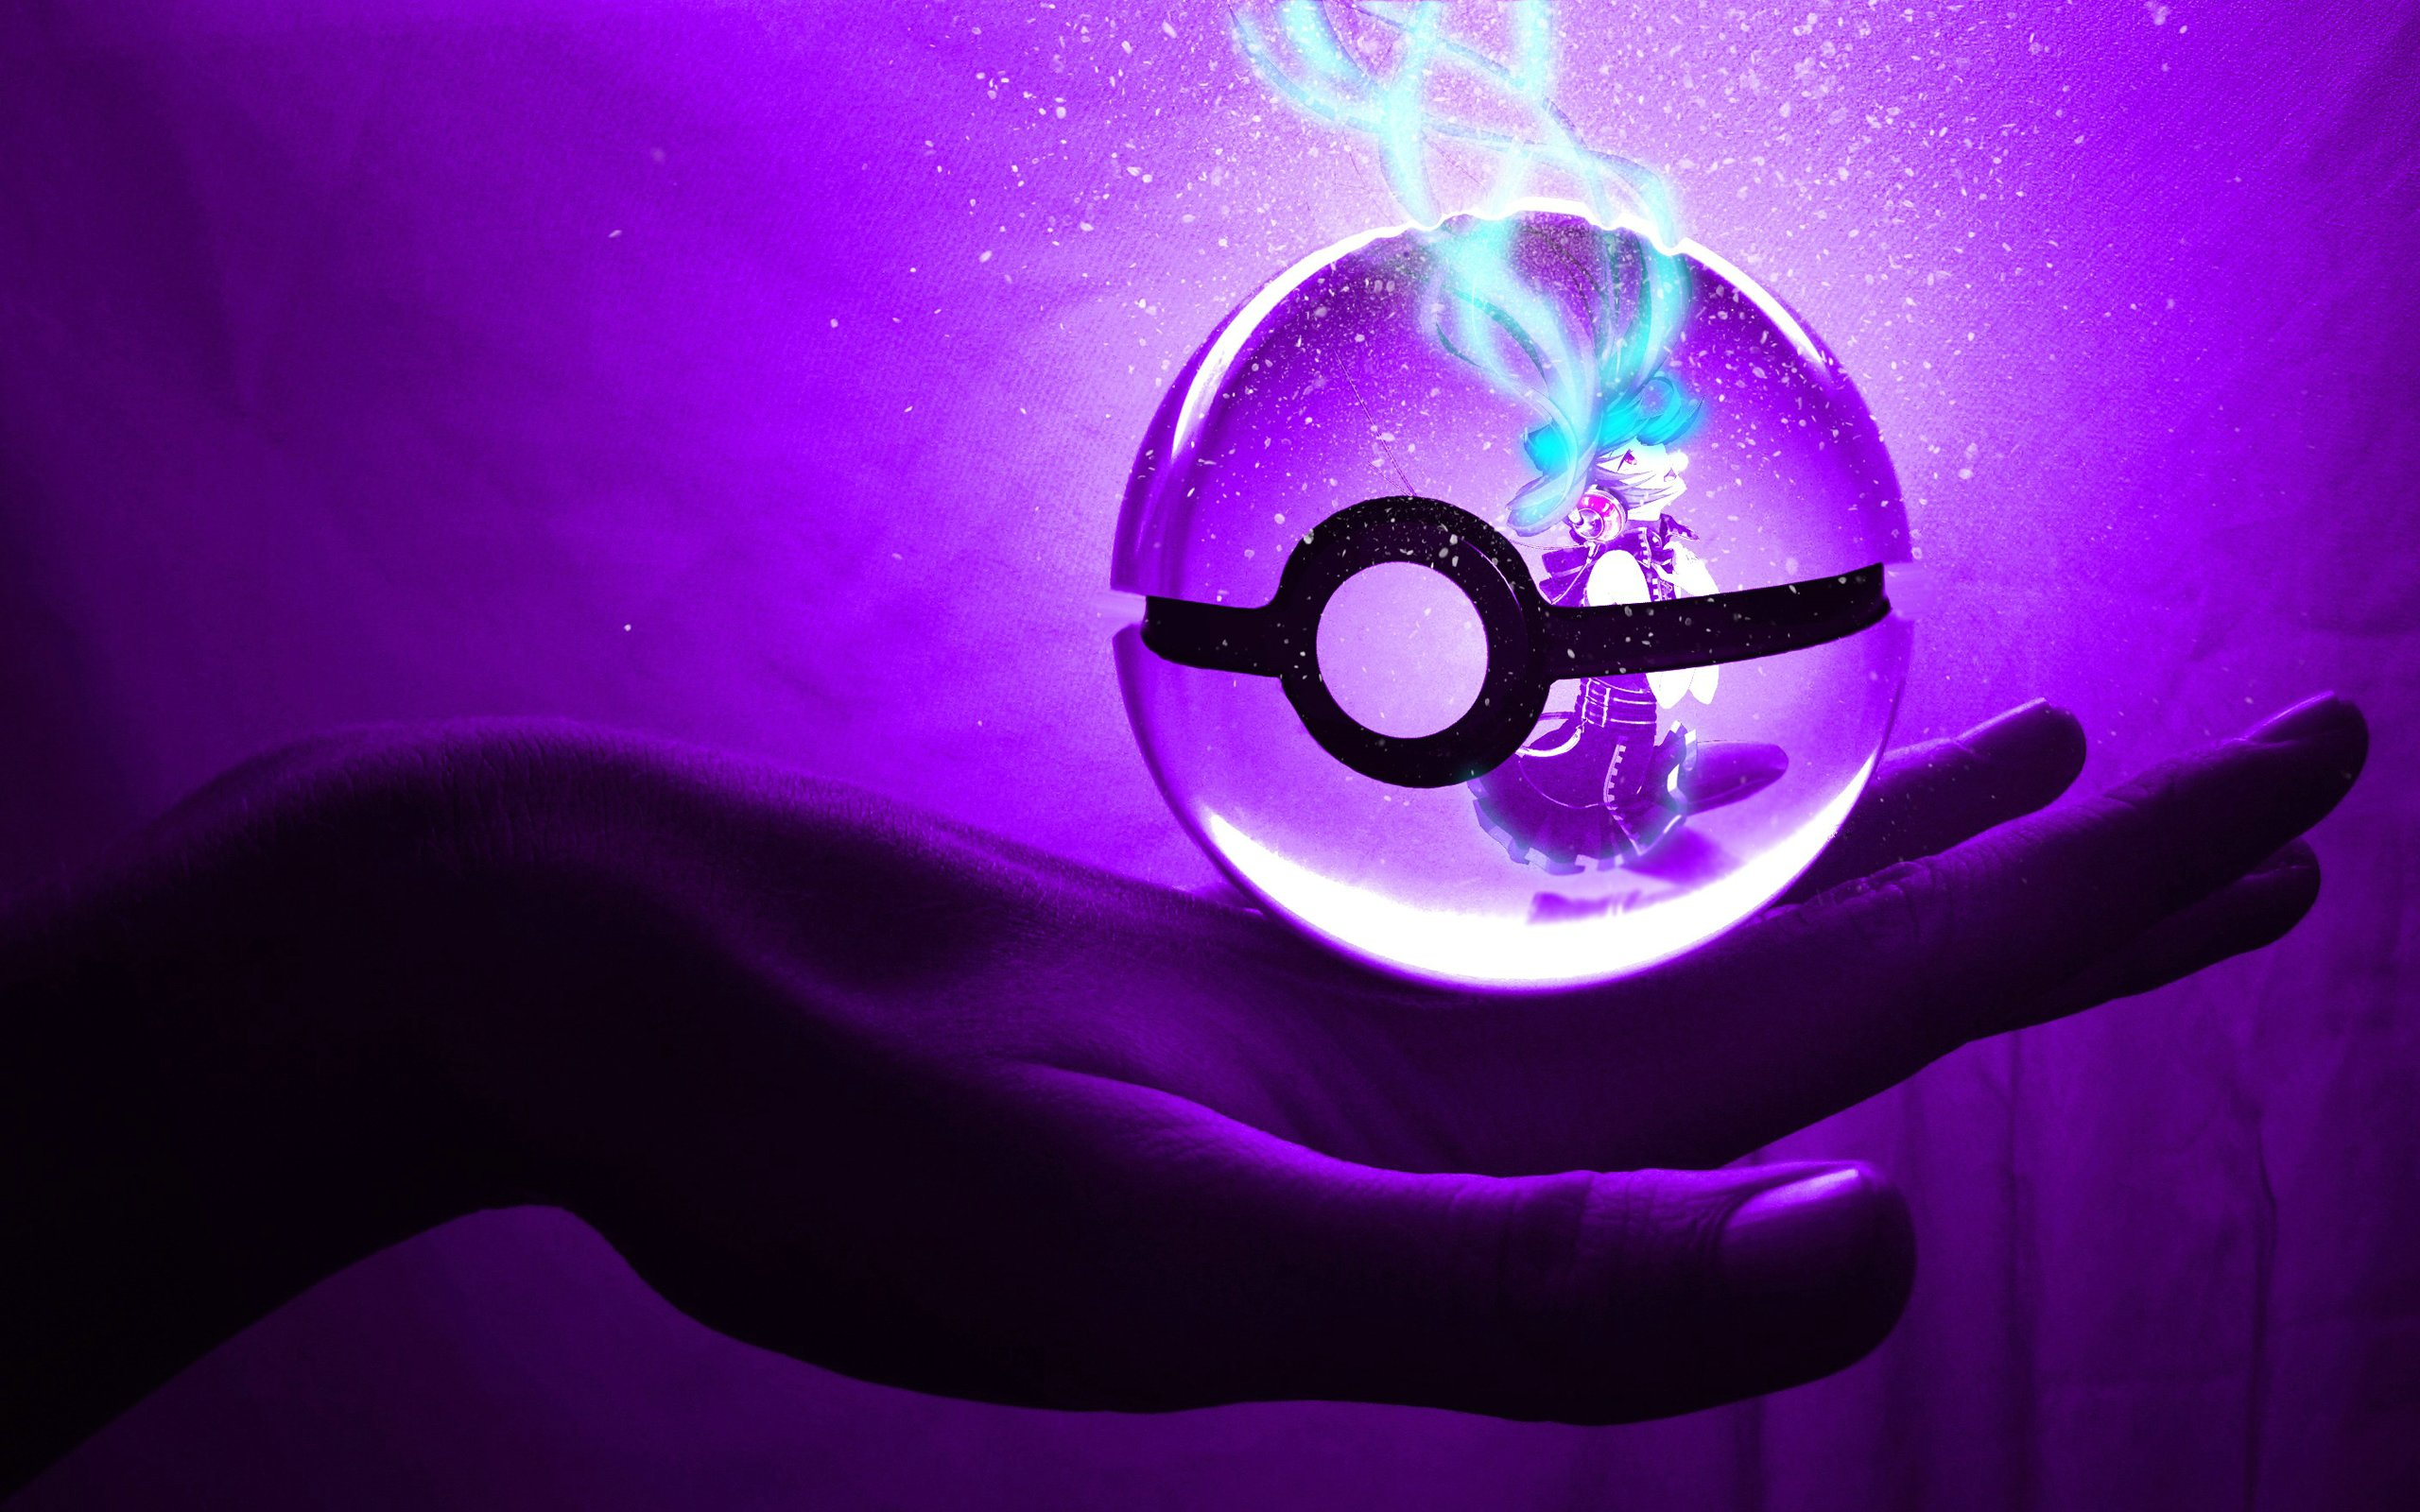 Cool Pokeball Wallpaper - WallpaperSafari